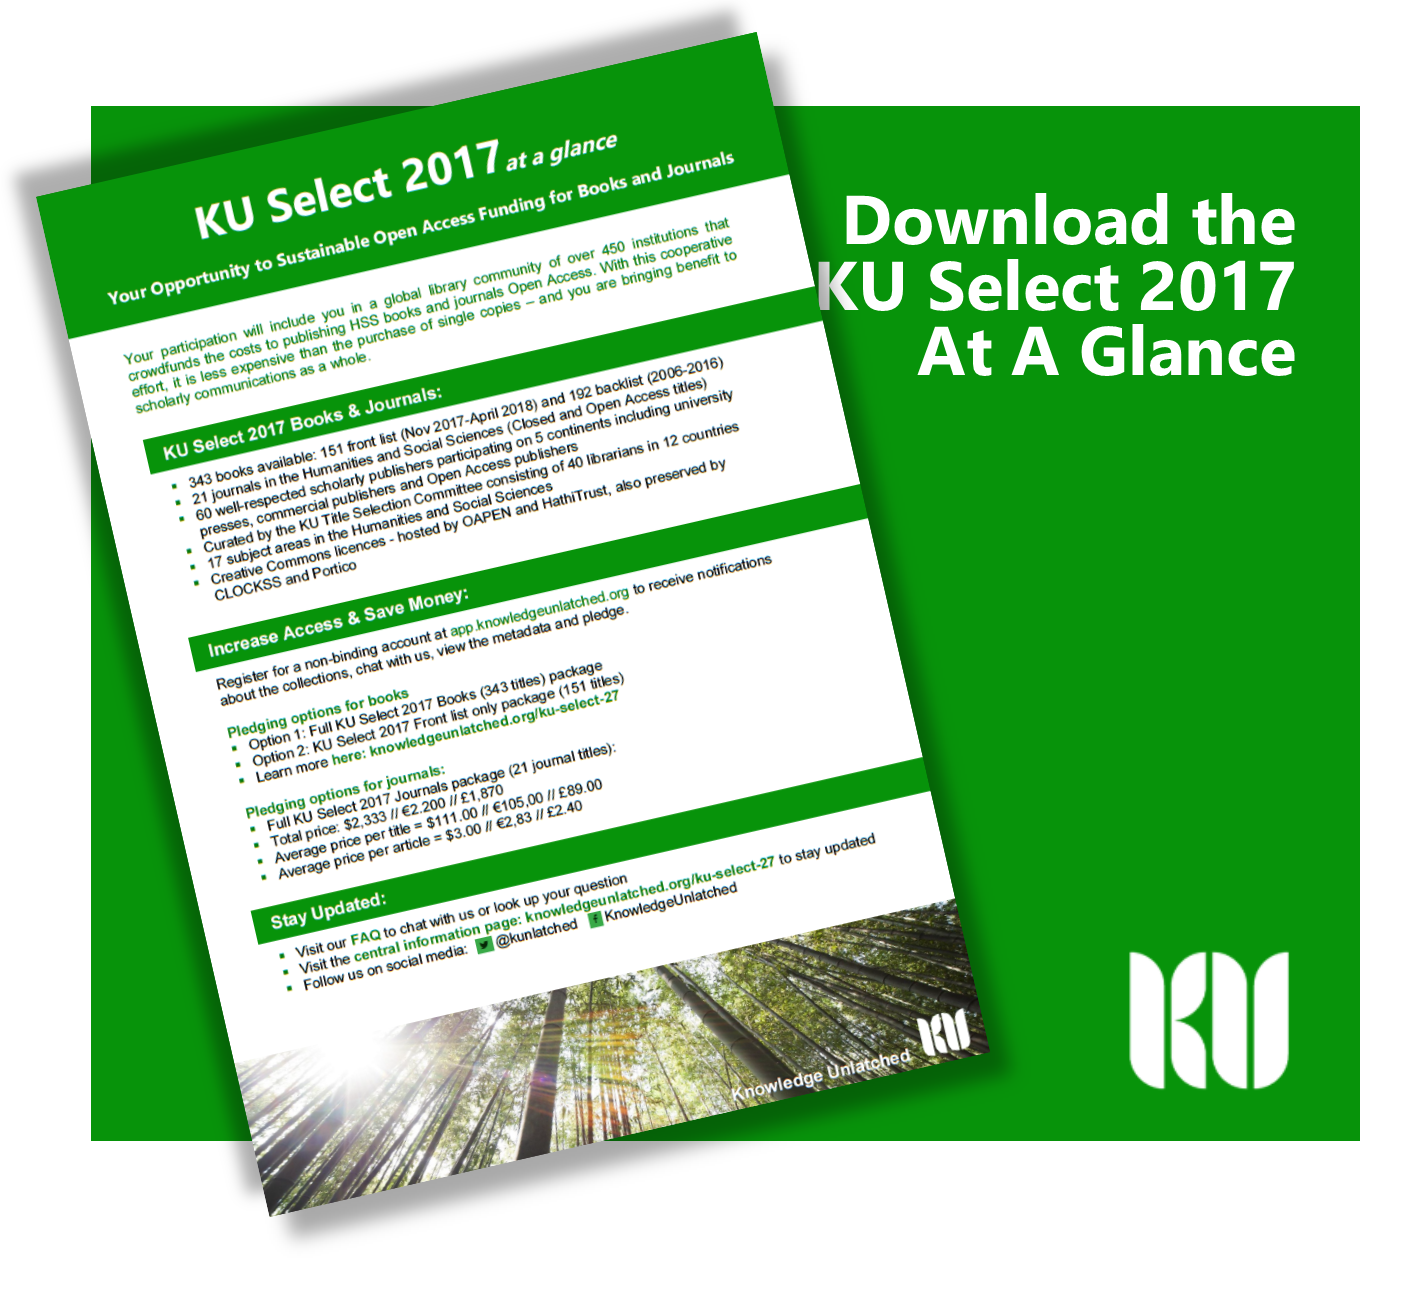 KU Select 2017_At a glance_download